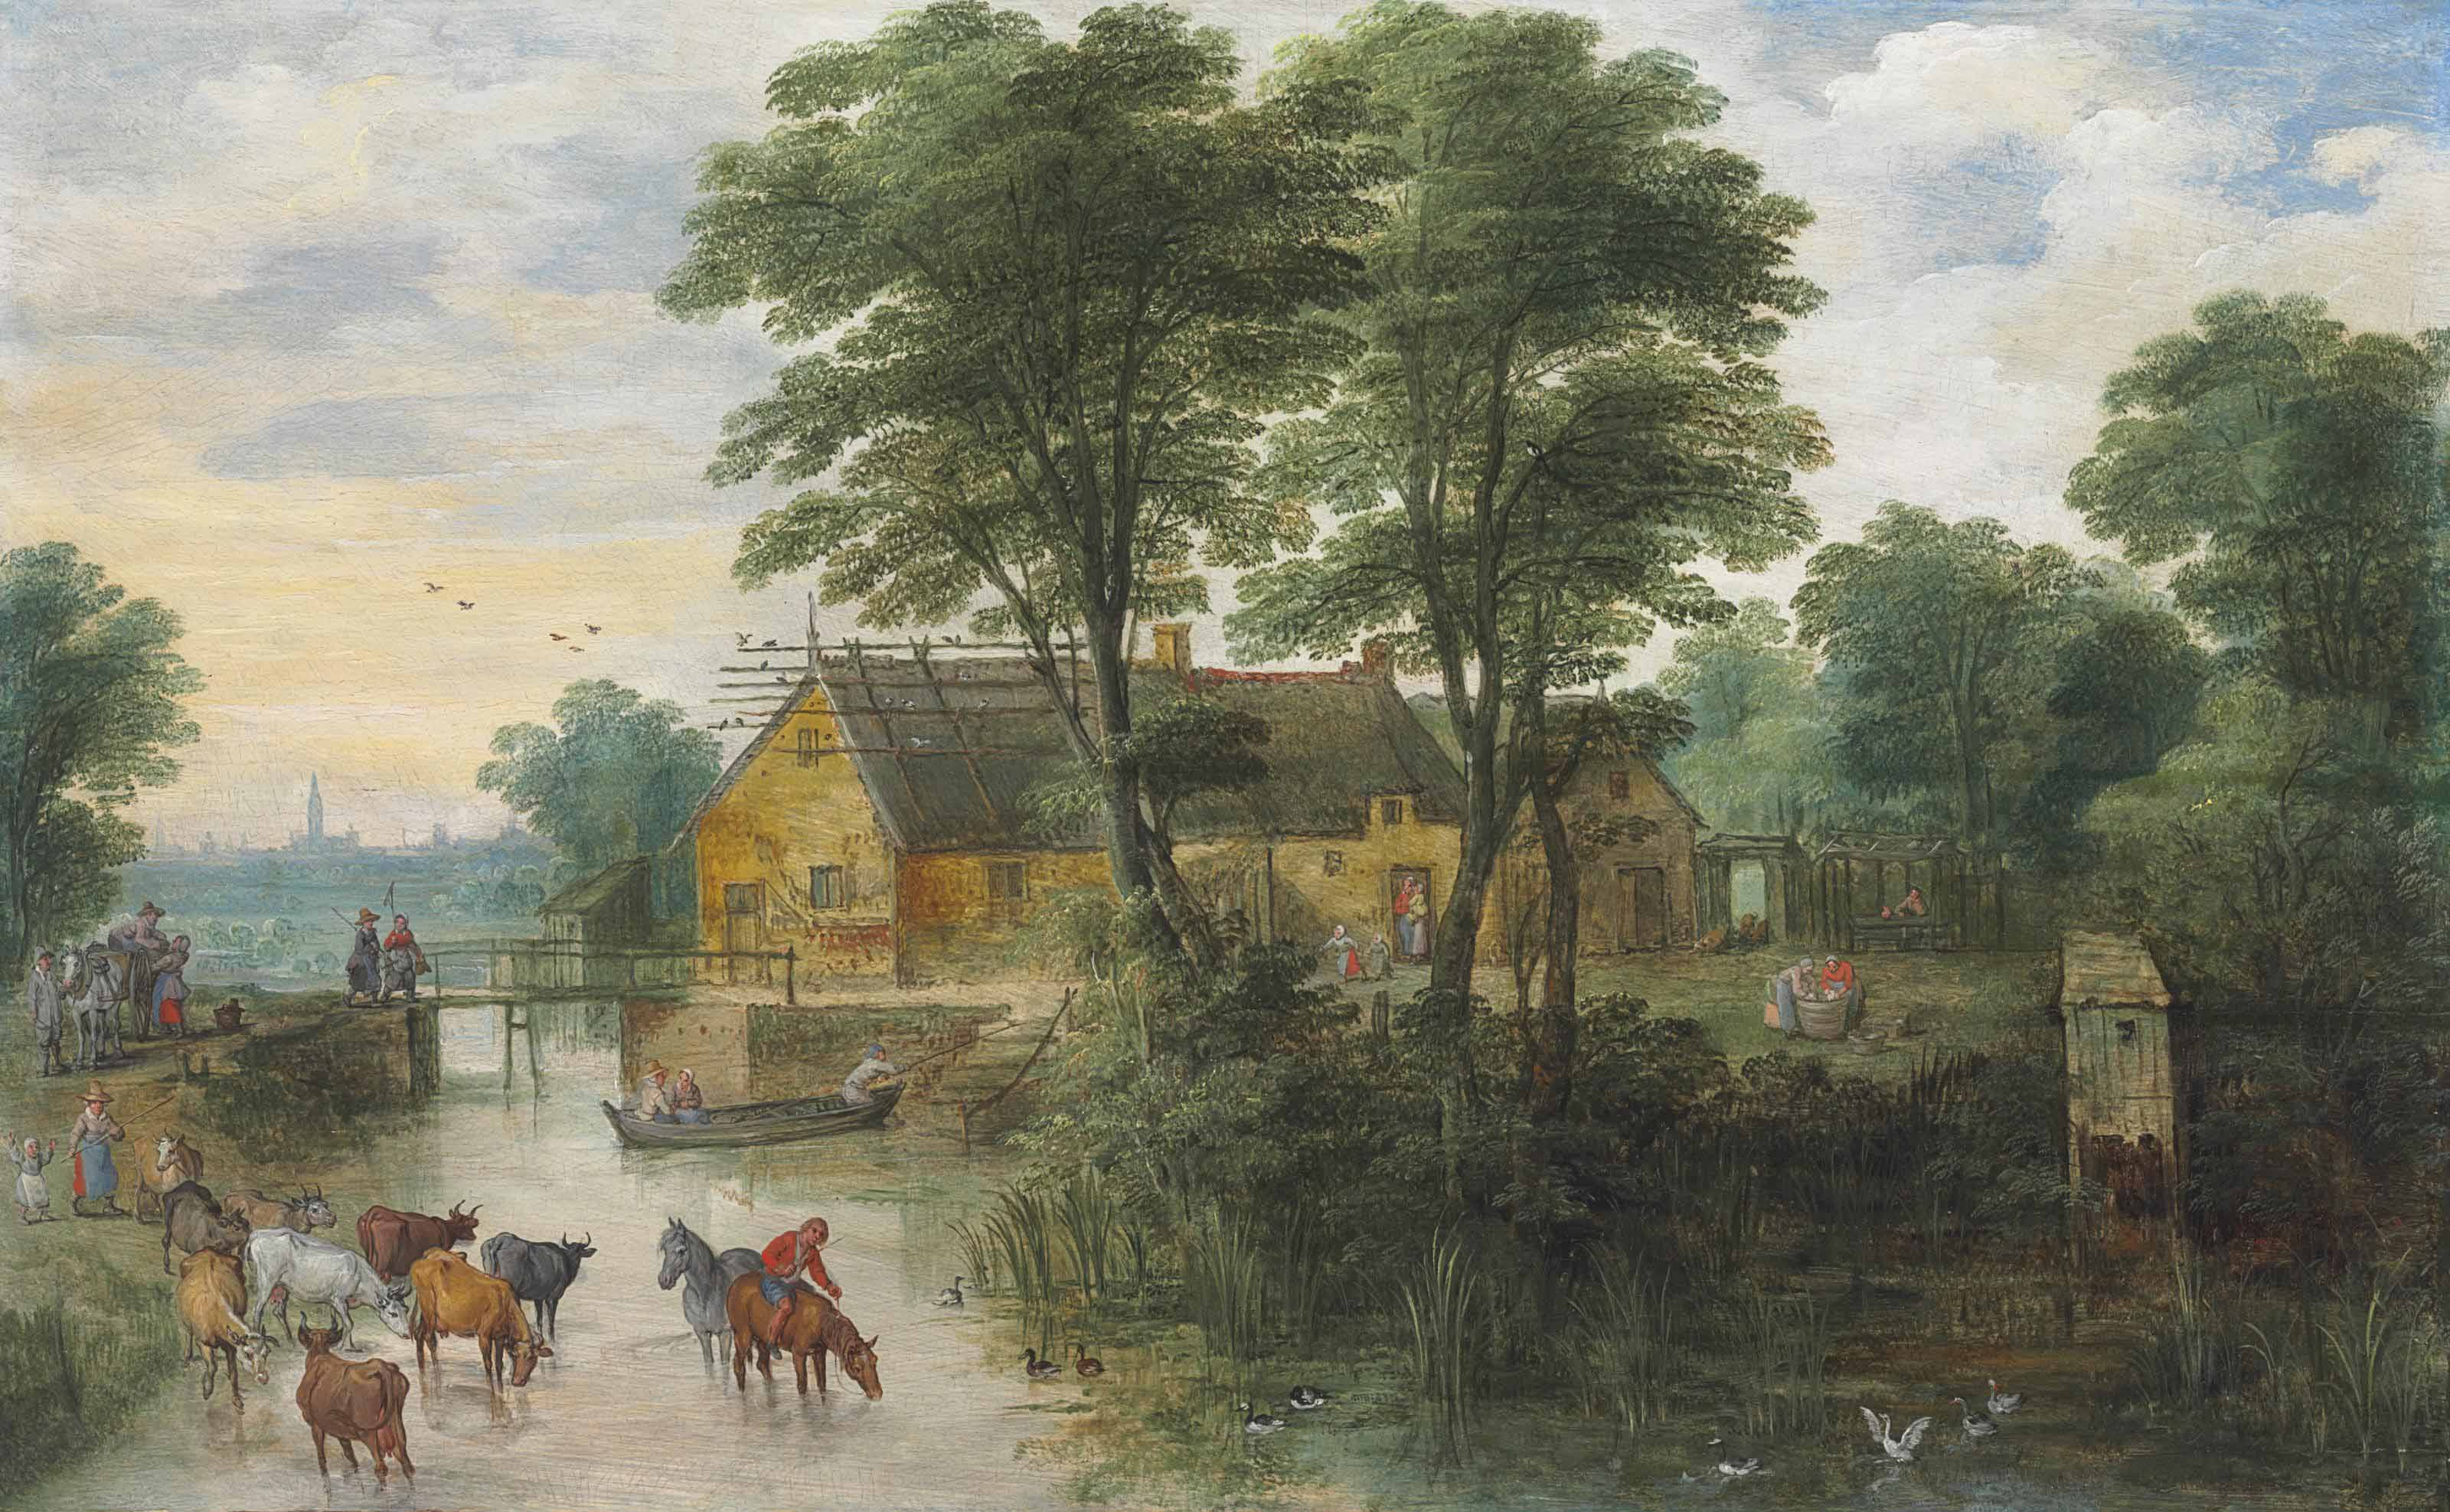 A river landscape with cottages and cattle, Antwerp in the distance